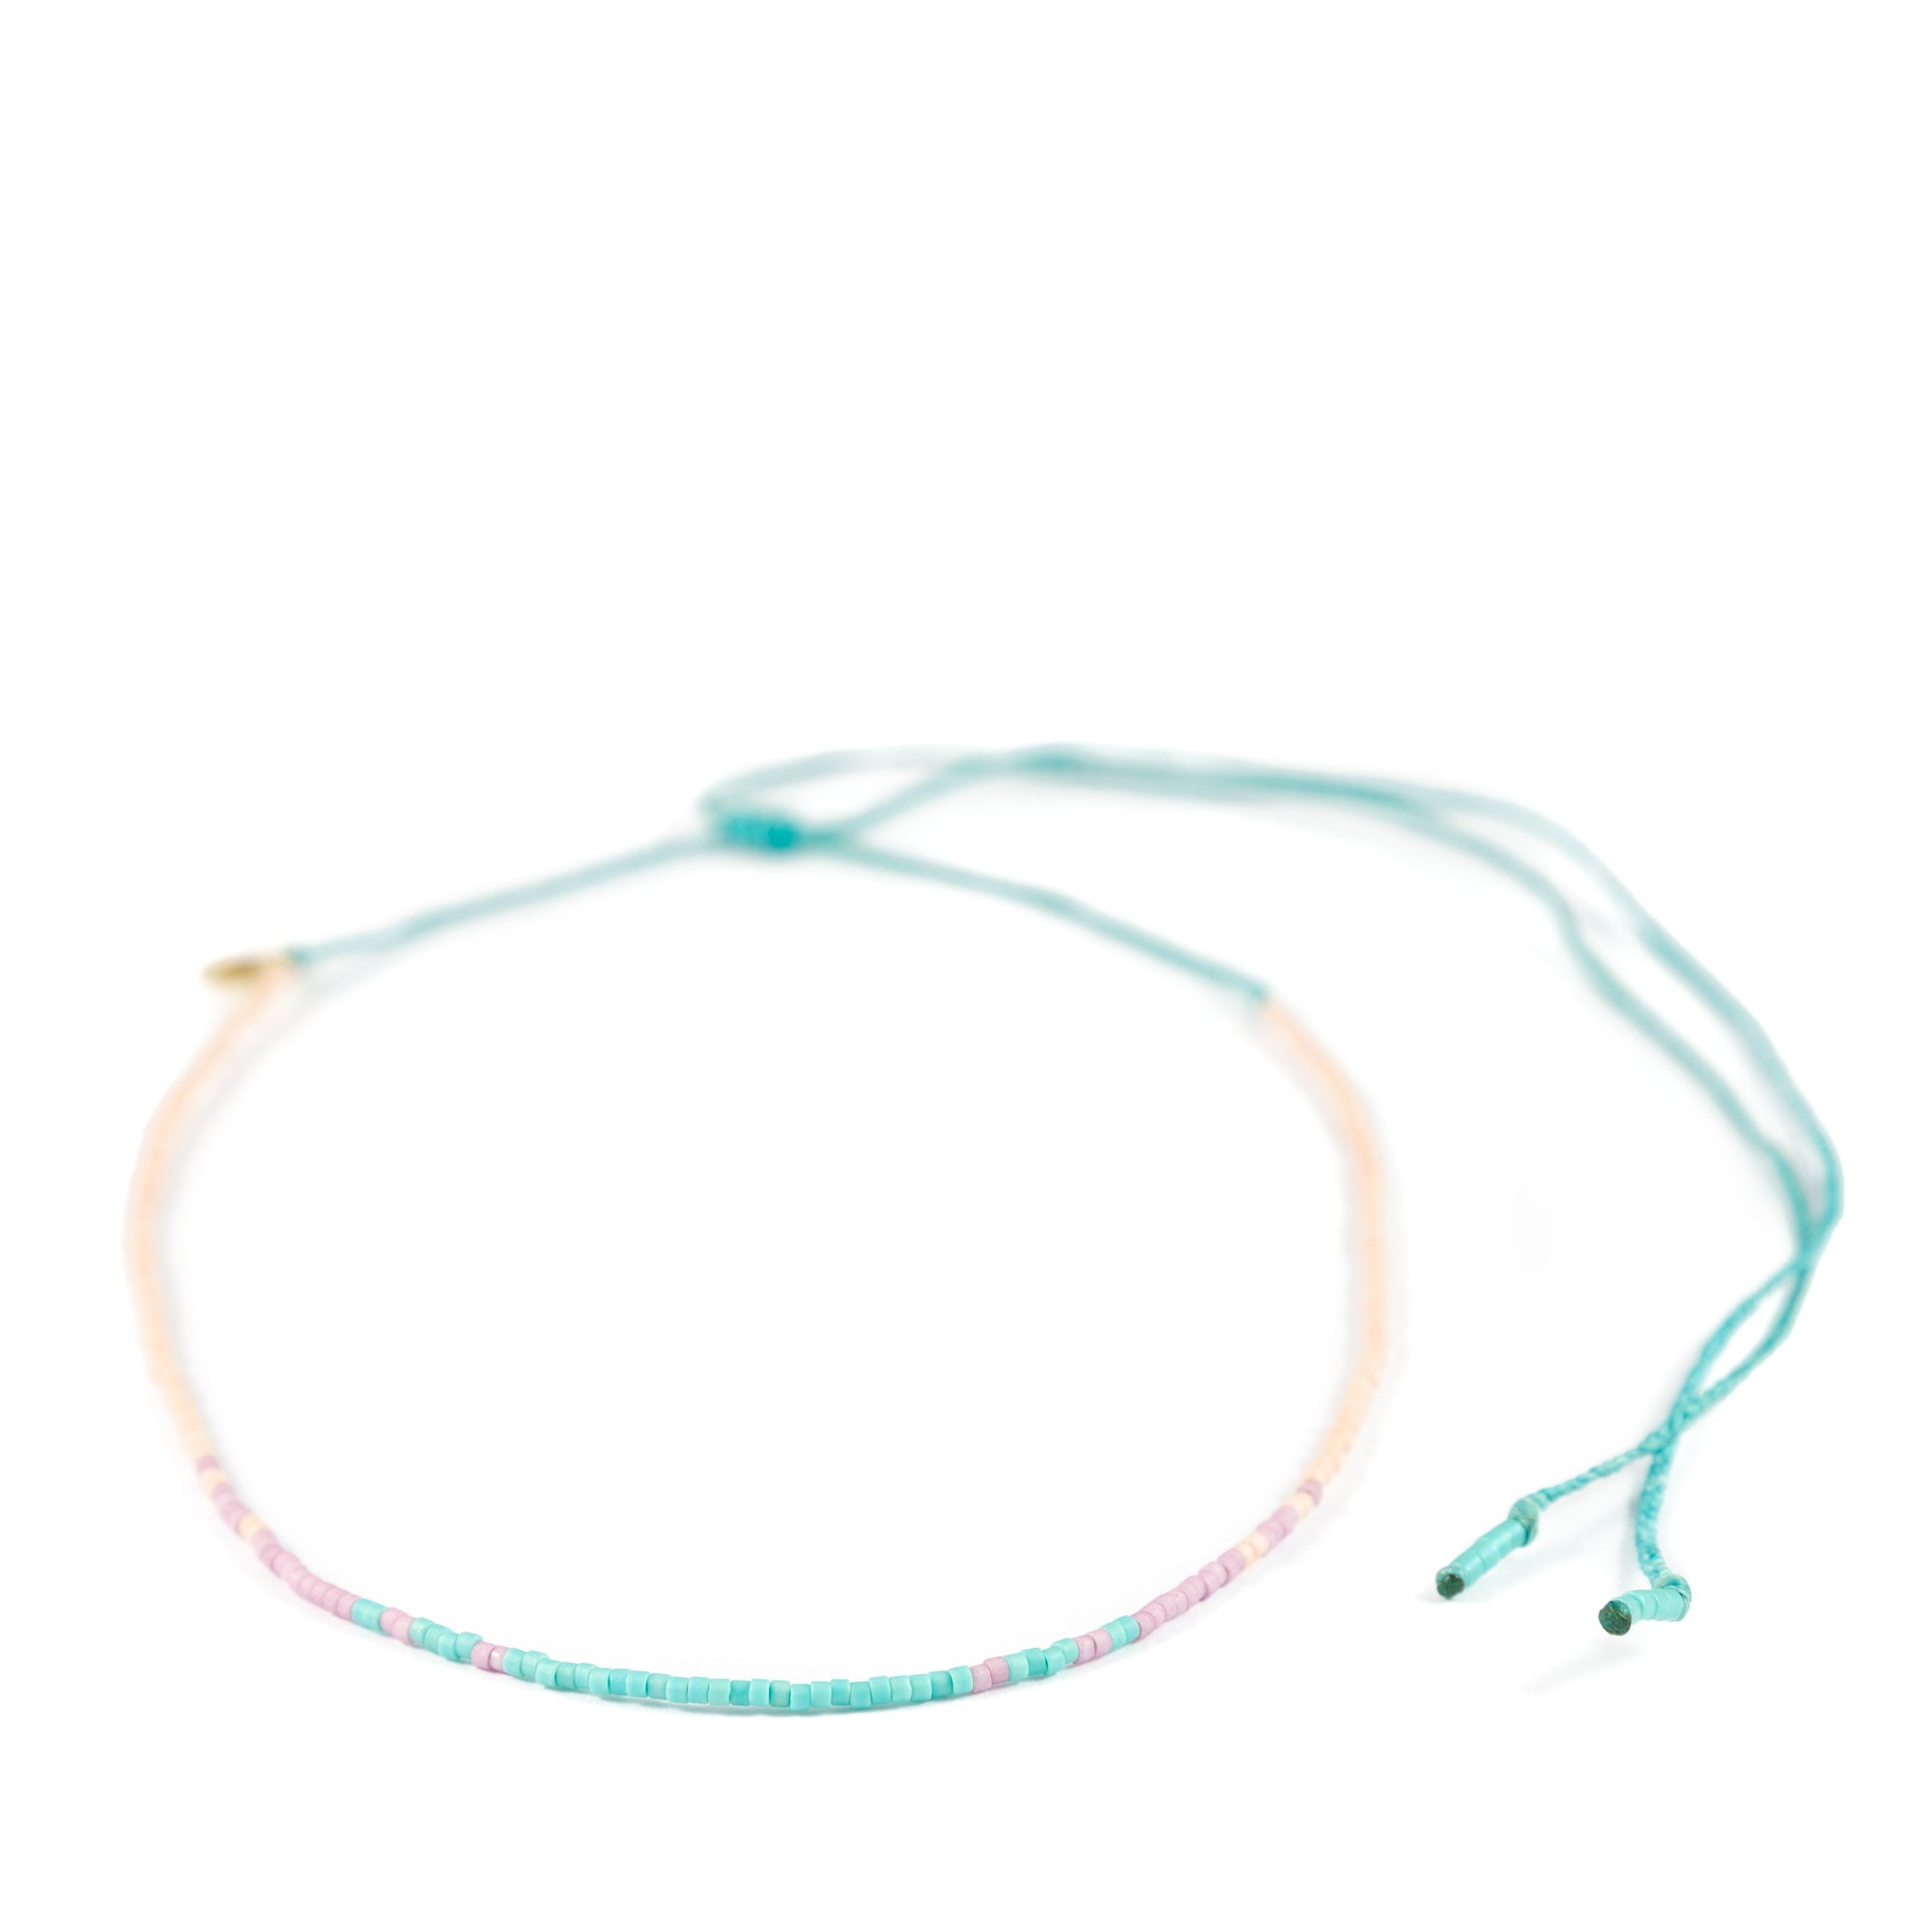 Coral Plum Teal Ombre Mermaid Necklace